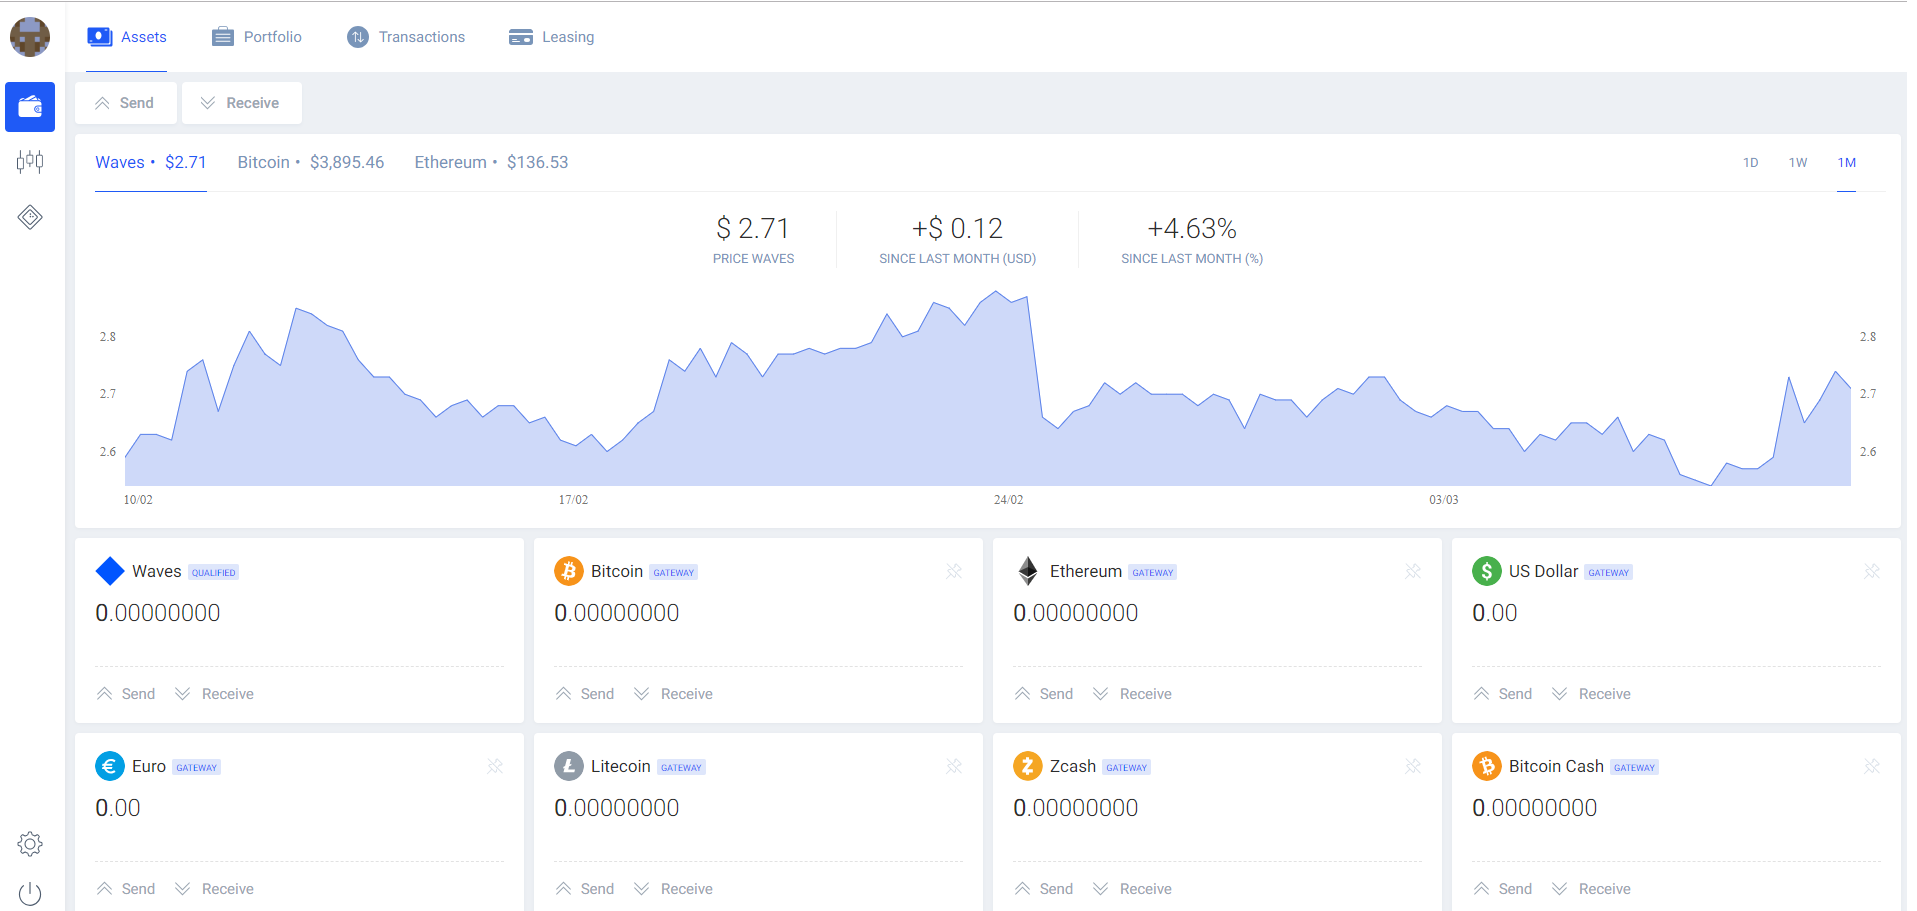 Waves Exchange Trading View